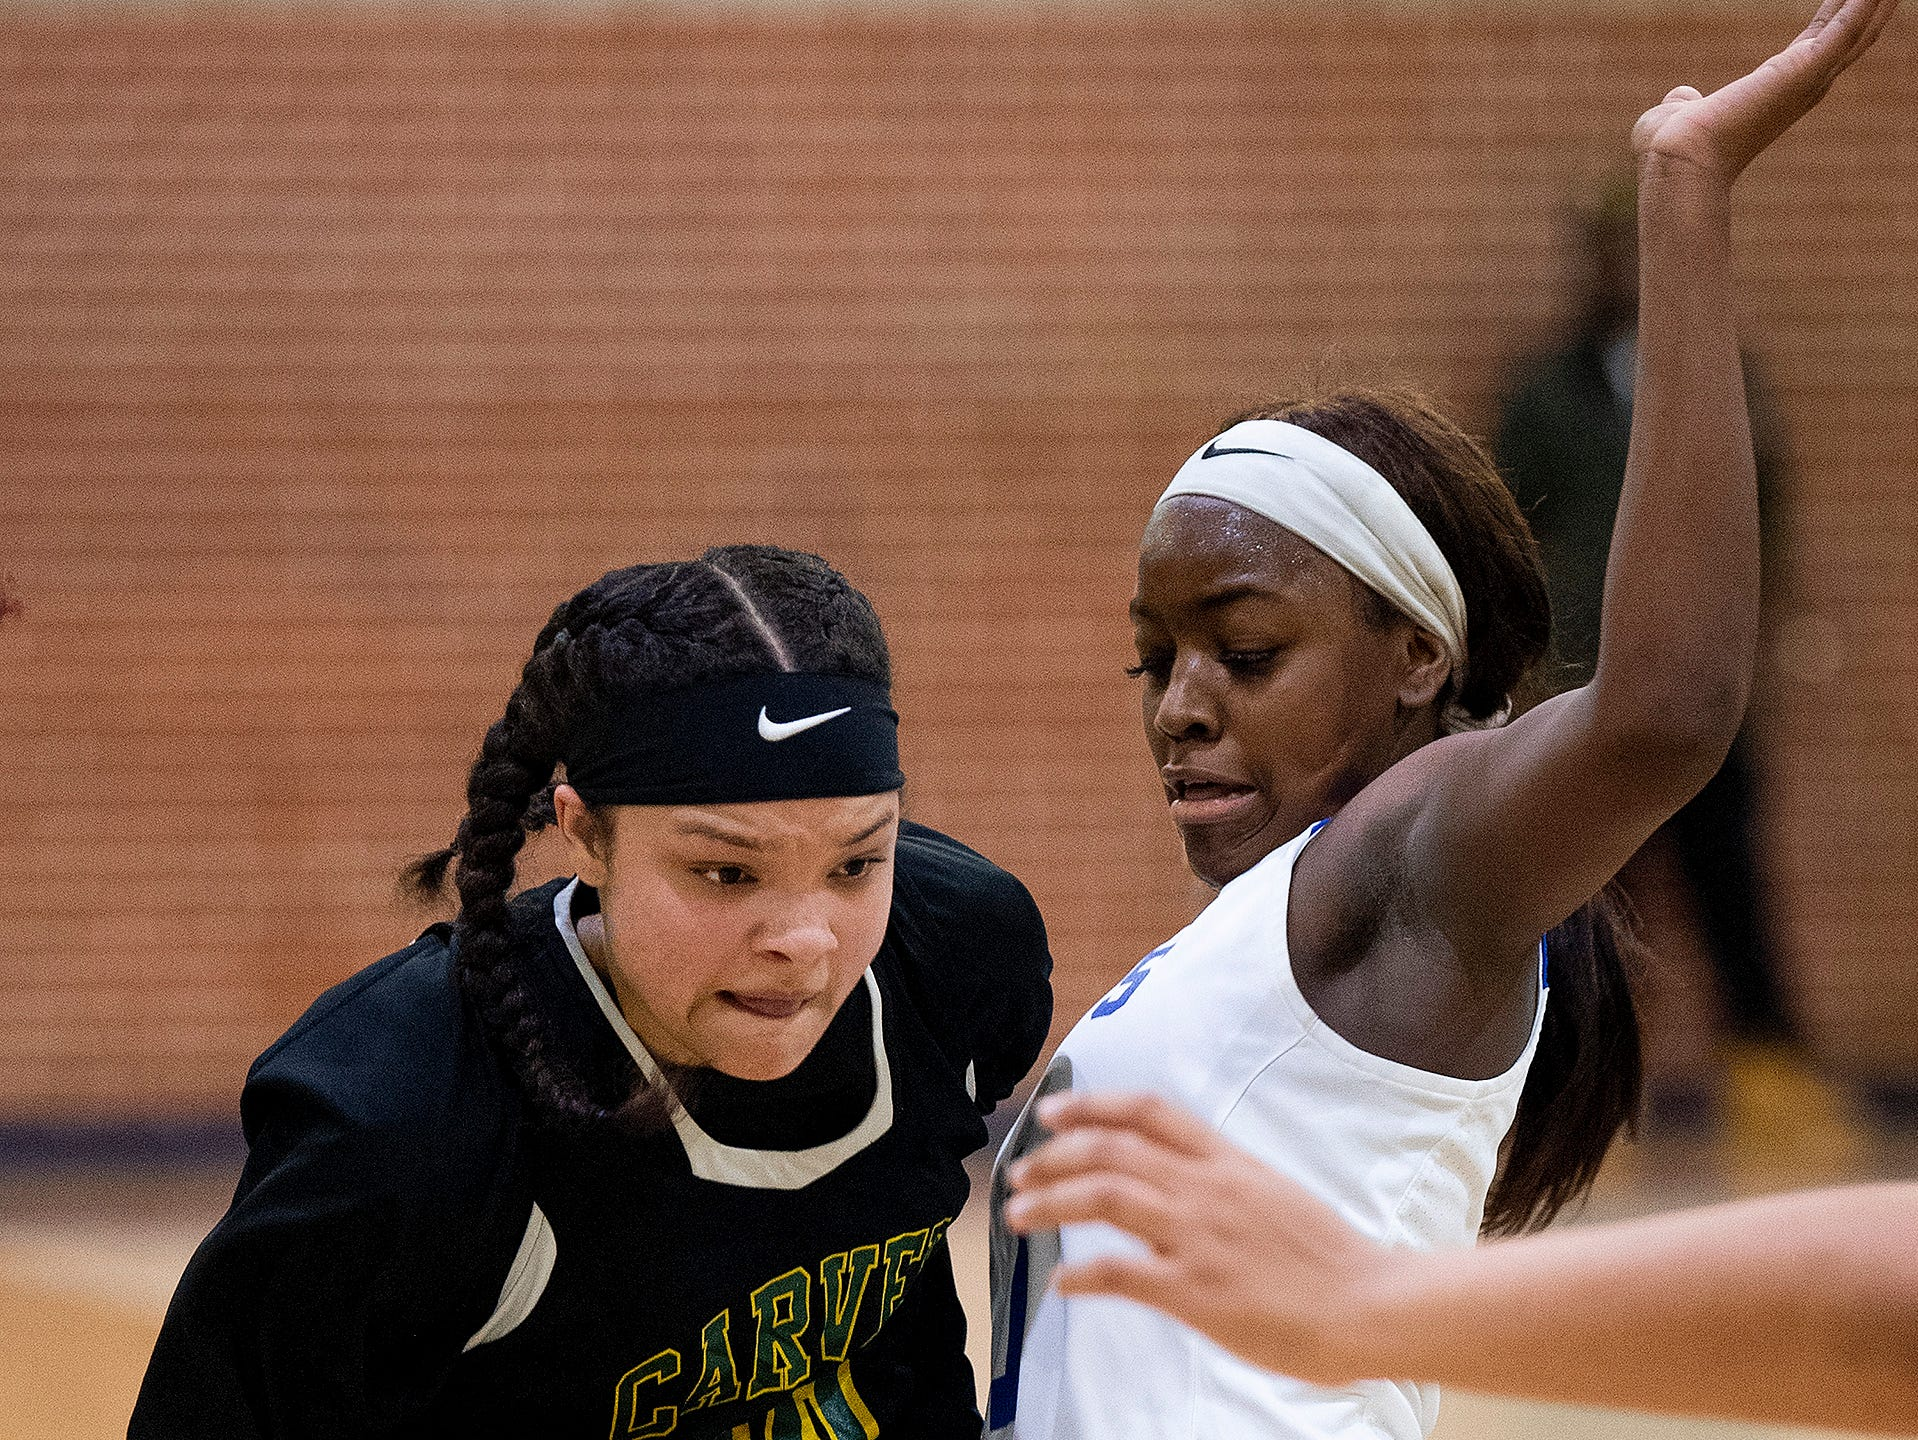 Carver's Kristin Brown (30) and Lanier's Ashley Shakelford (1) at the Lanier campus in Montgomery, Ala., on Friday January 11, 2019.